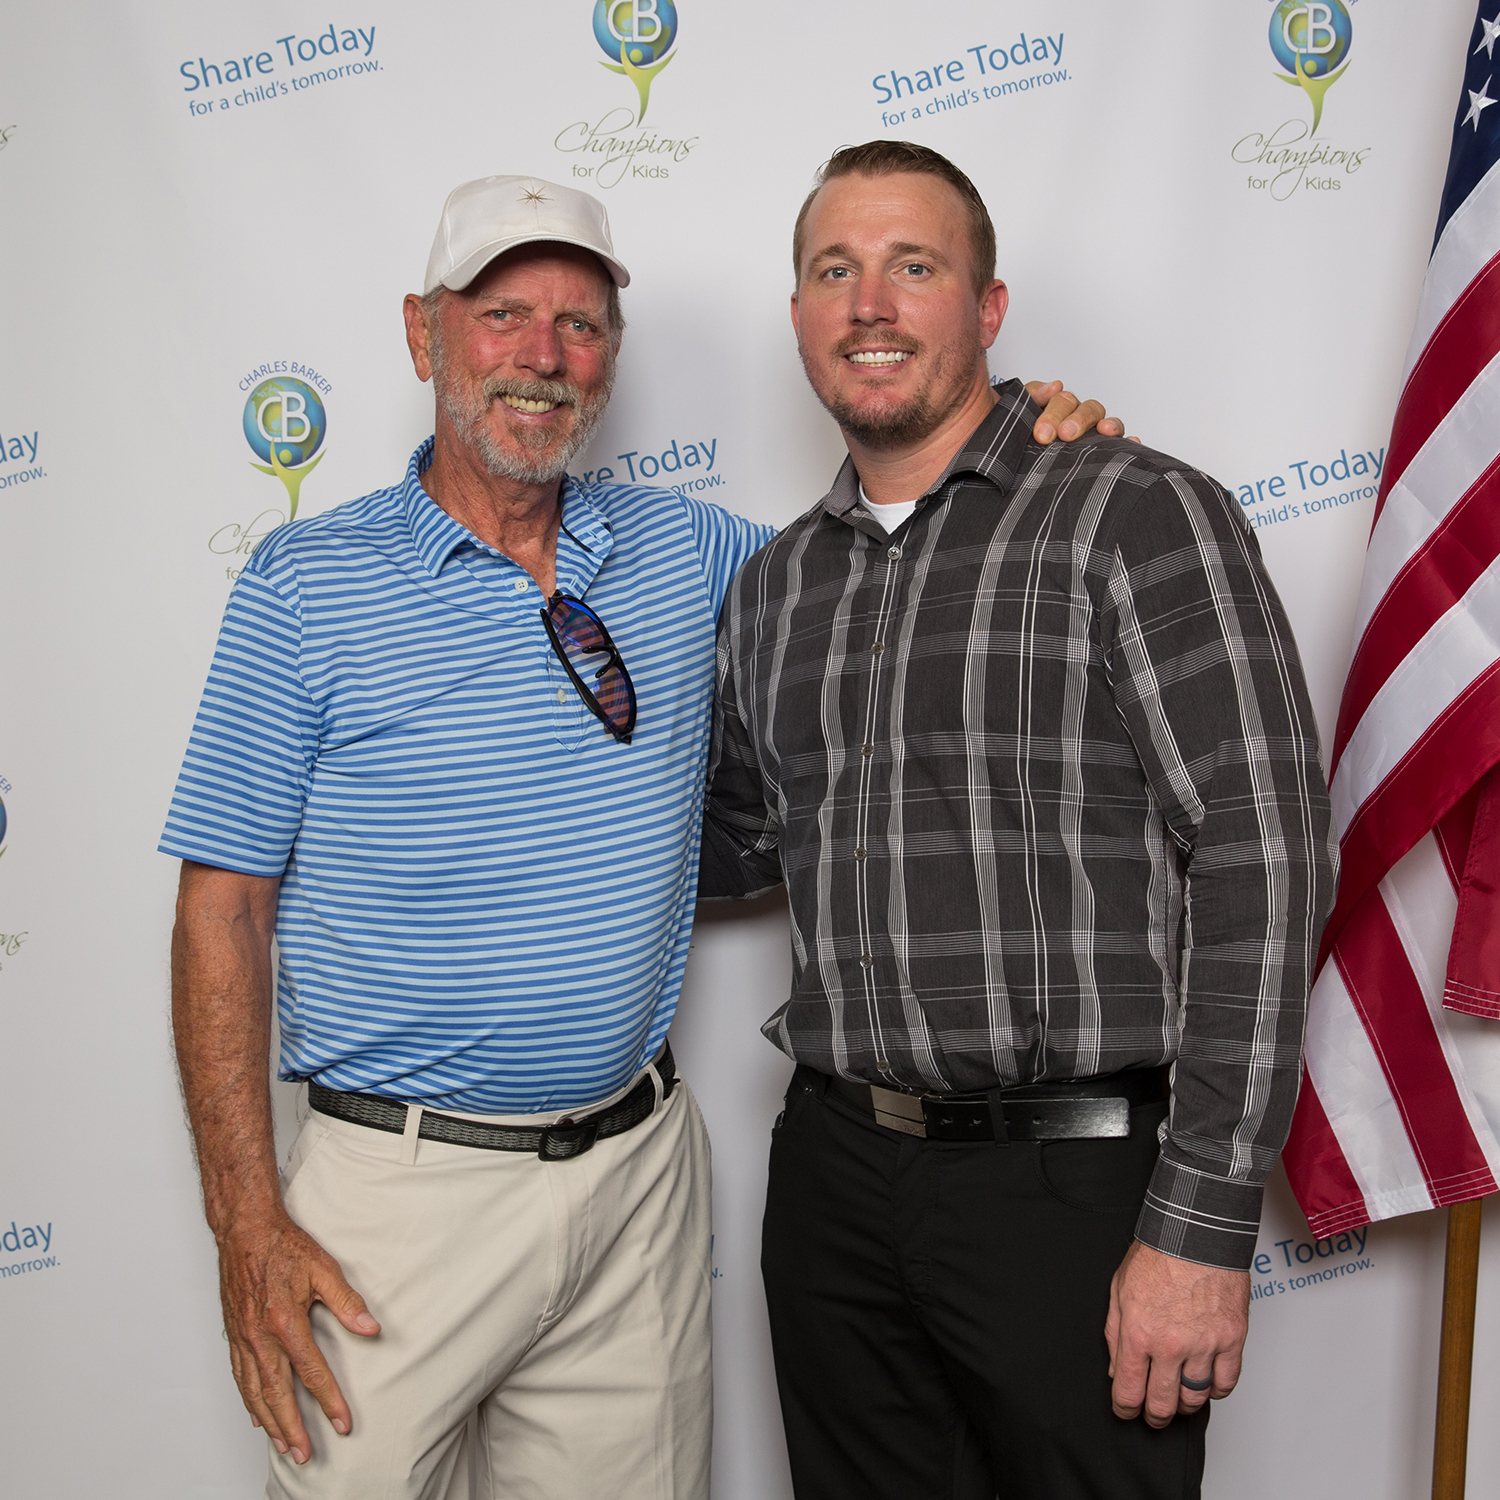 192-champions-for-kids-event-photography-bayville-country-club-don-monteaux-photography.jpg